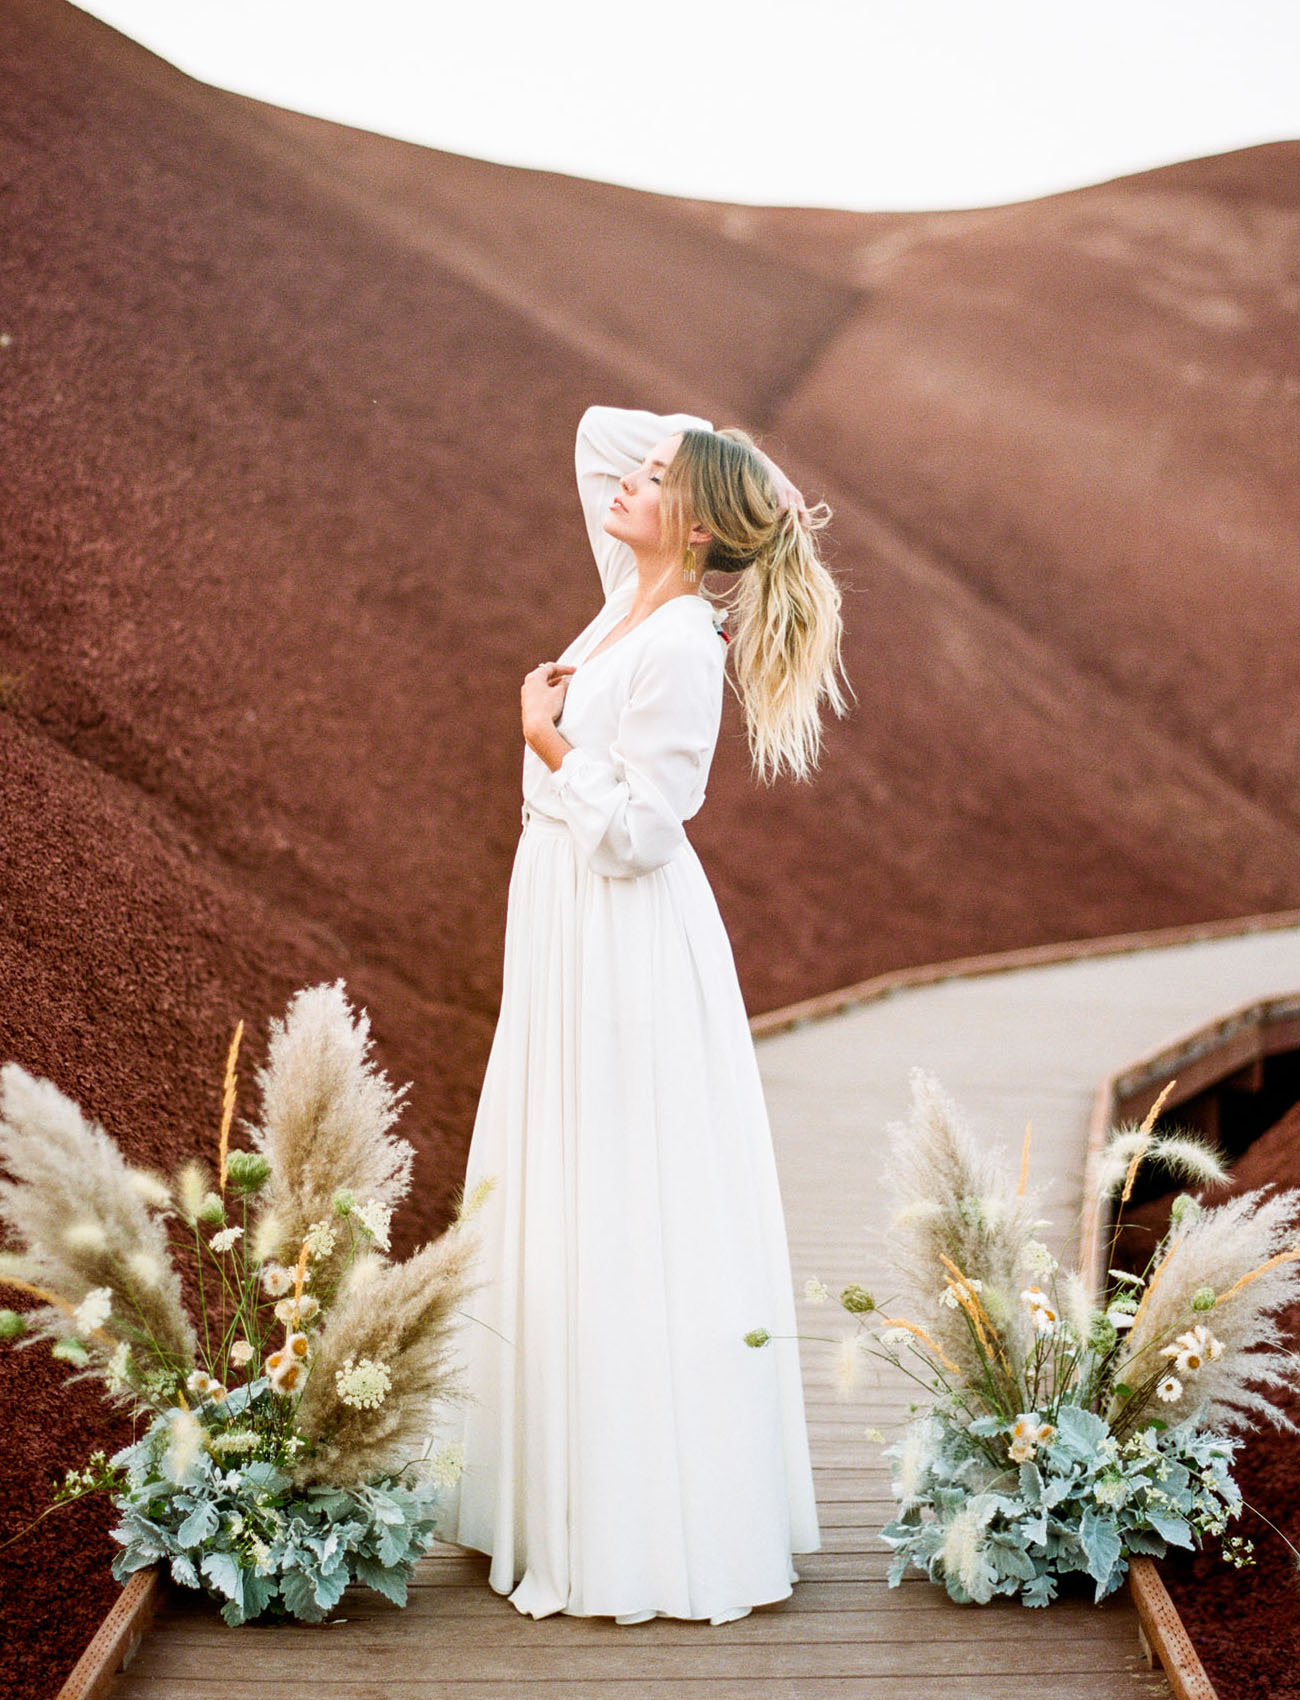 Terra Cotta 70s Bridal Inspiration Among The Painted Hills